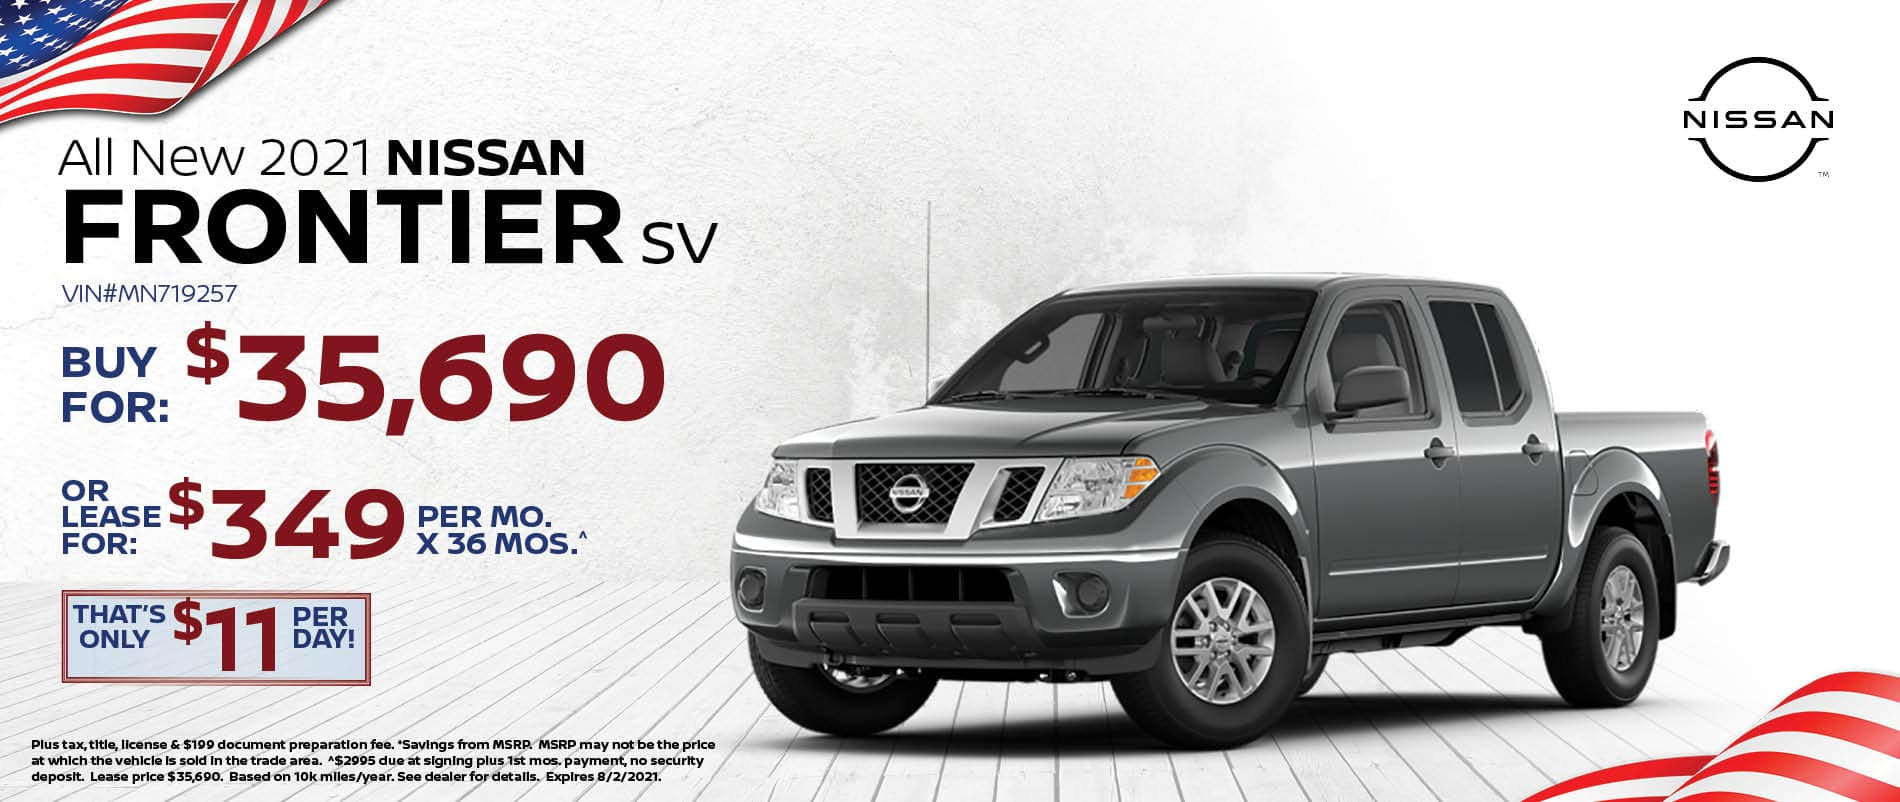 New 2021 Nissan Frontier Special Offer